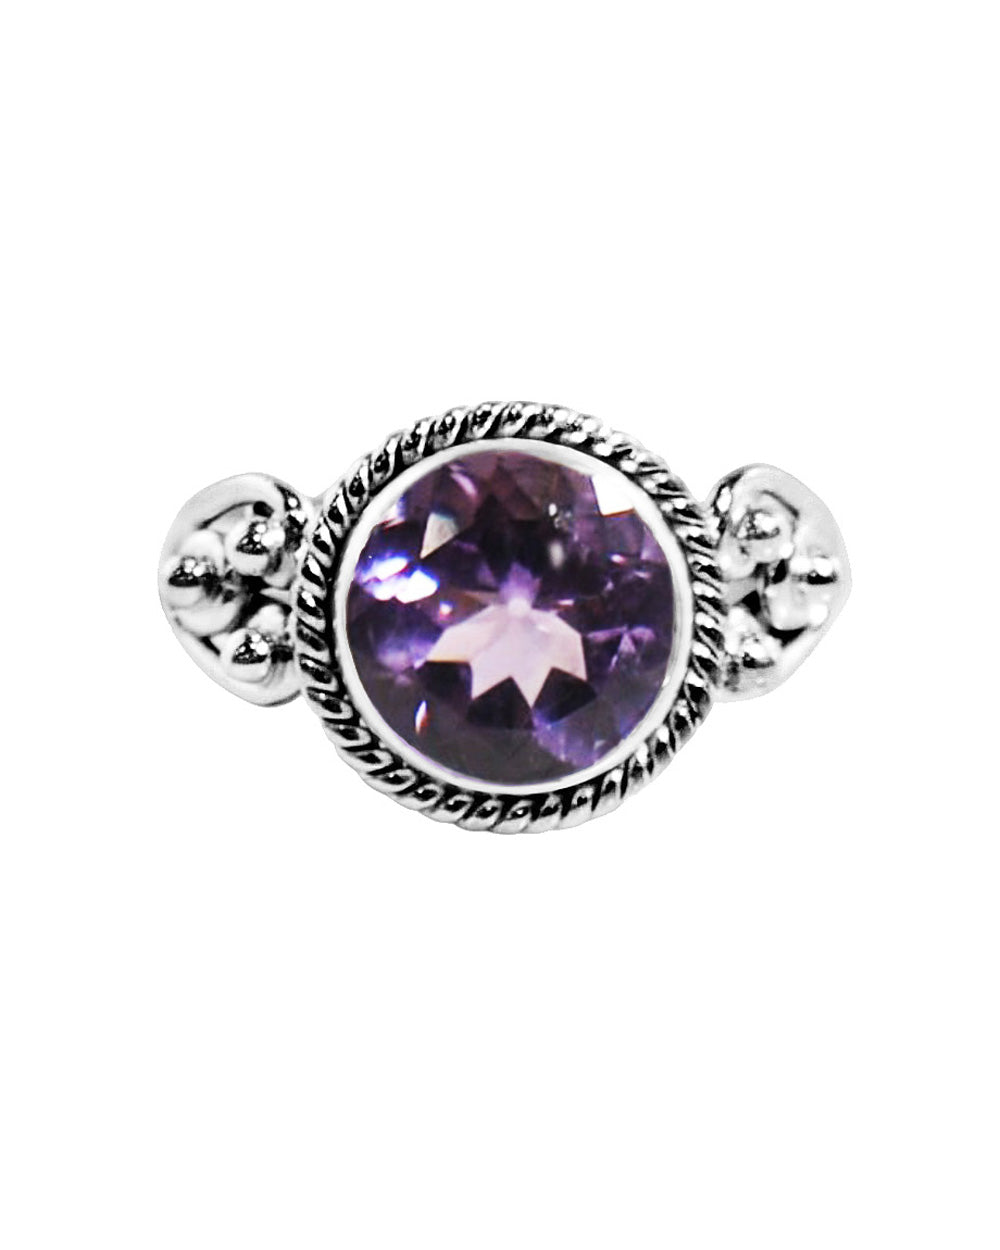 Divya Round Cushion Cut Amethyst 925 Sterling Silver Ring